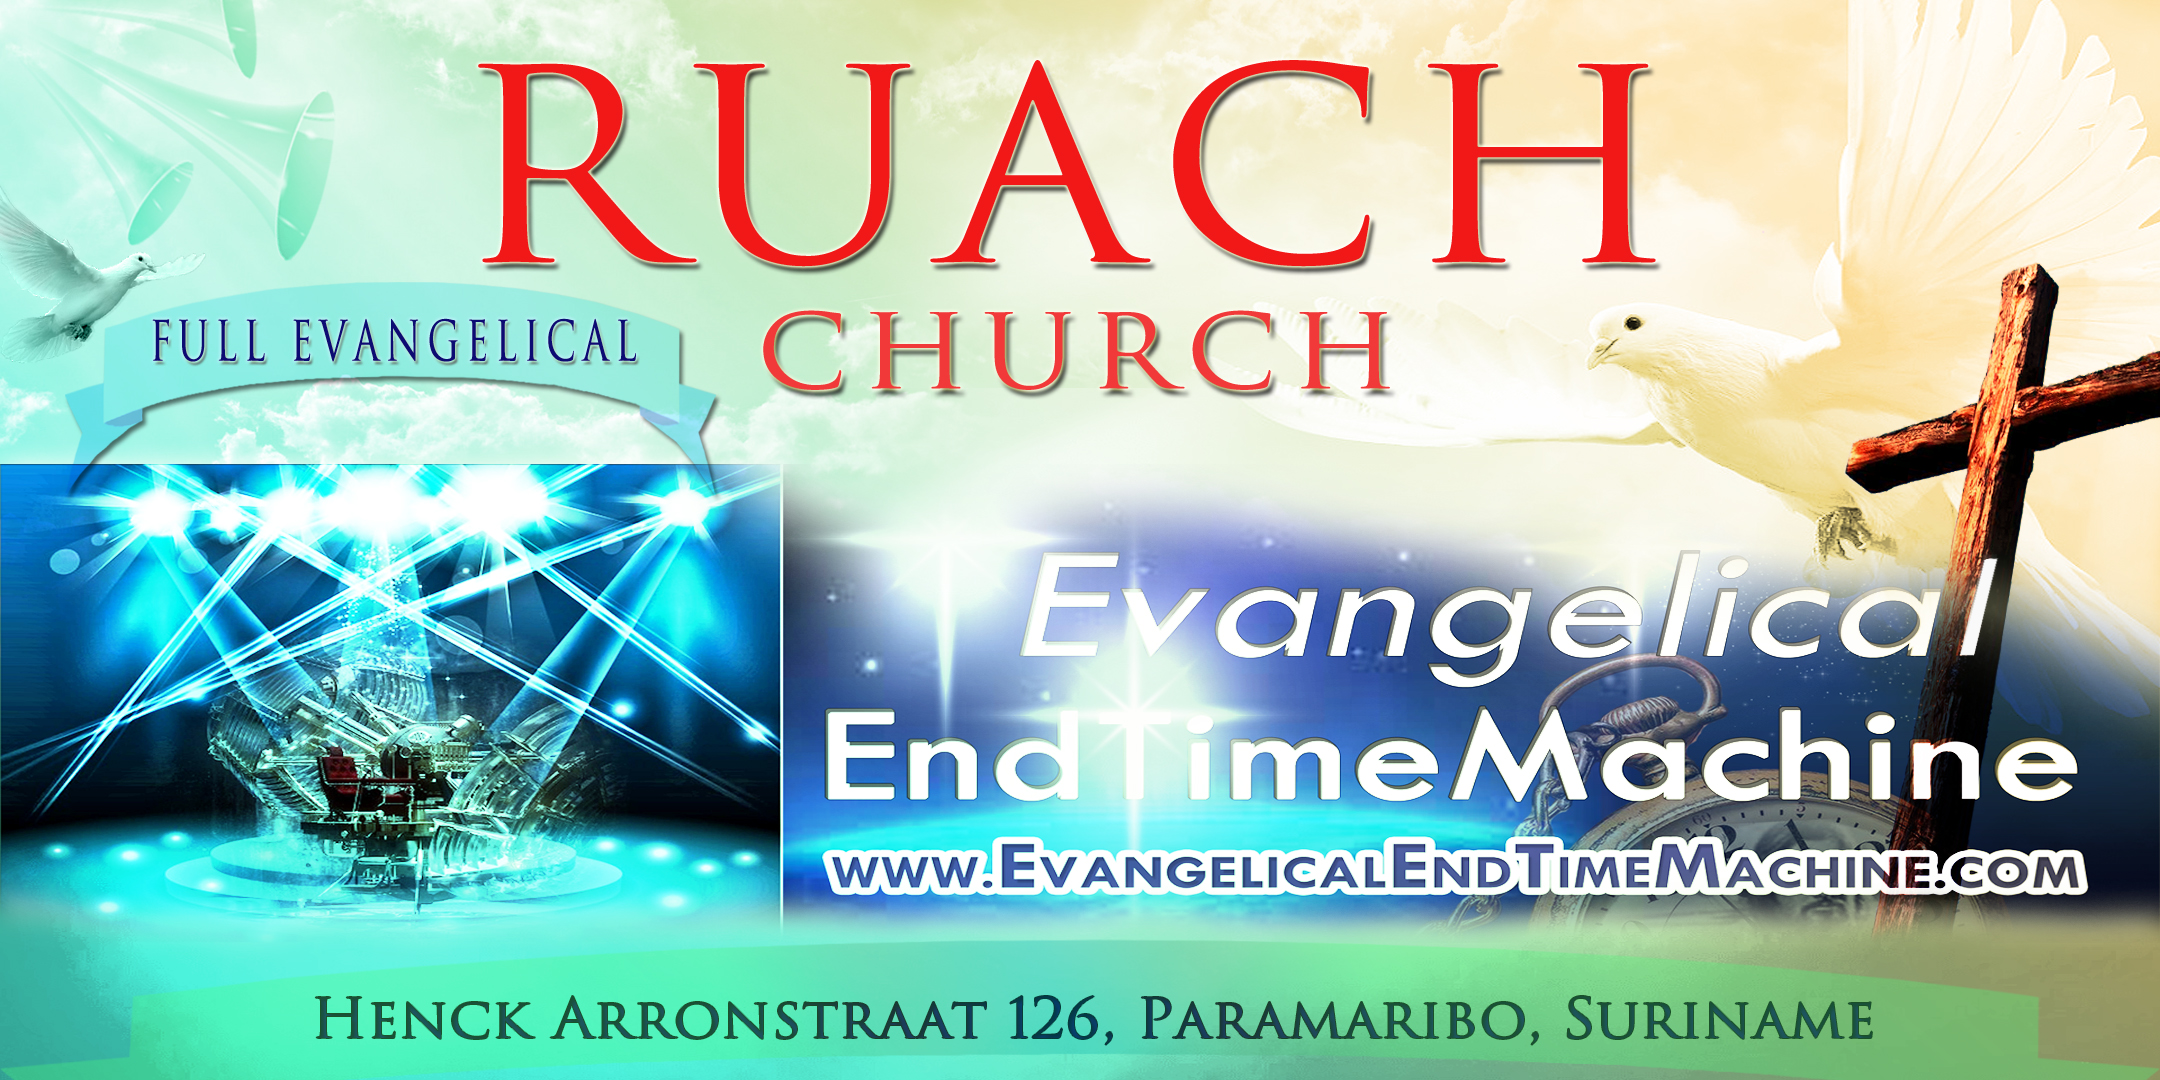 ruach-church-banner-suriname